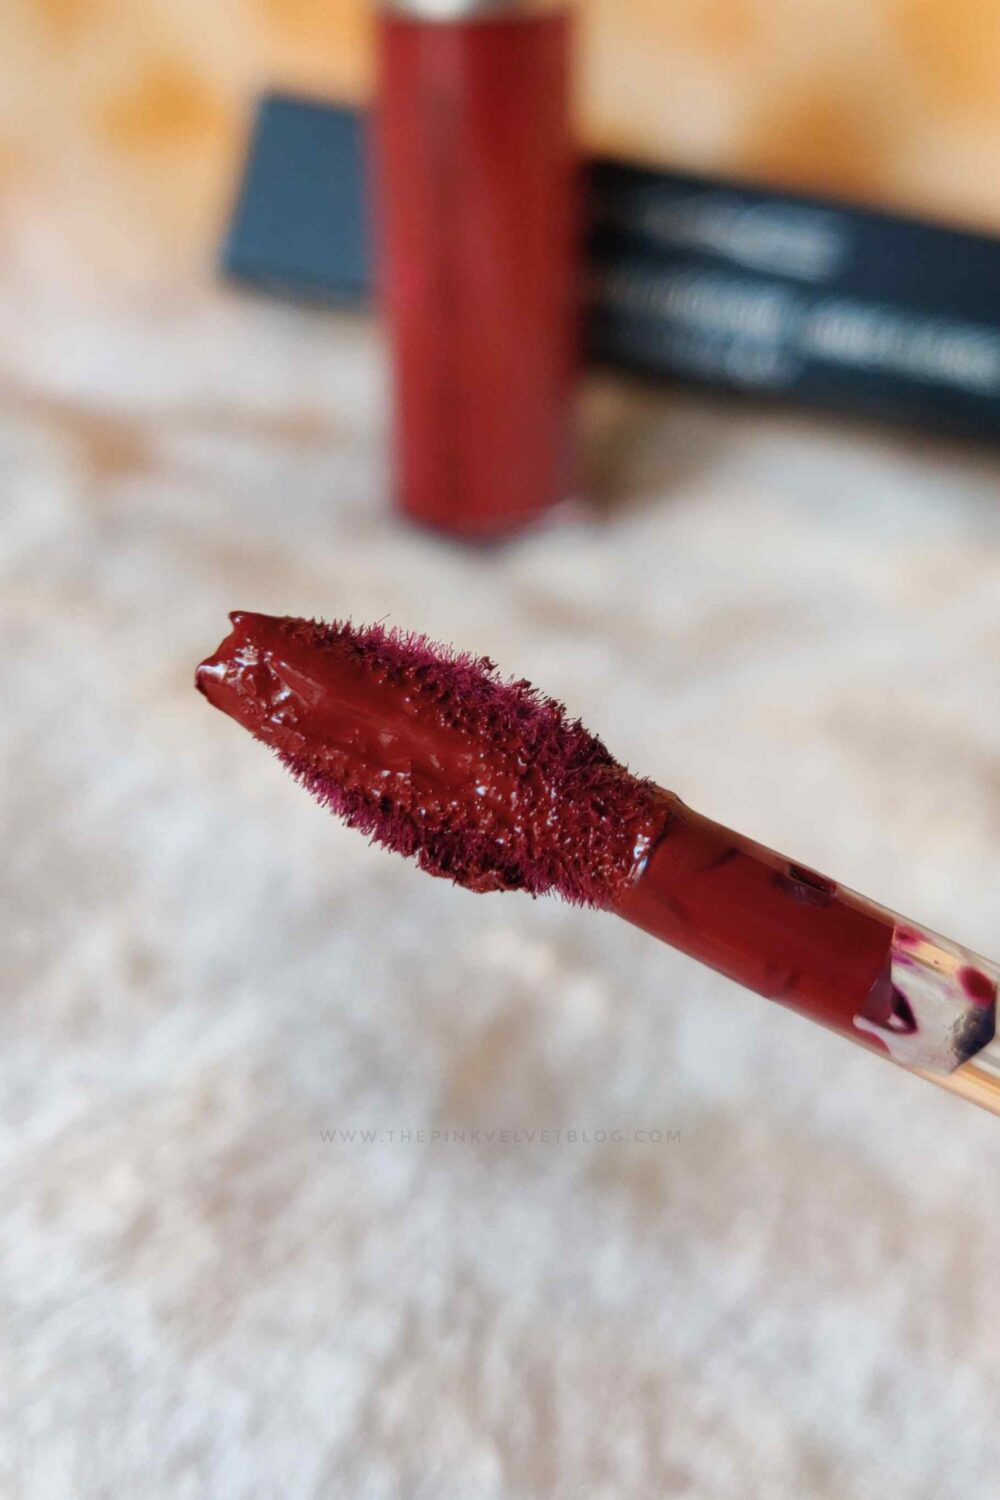 MAC Retro Matte Liquid Lipstick Carnivorous - Review and Swatches